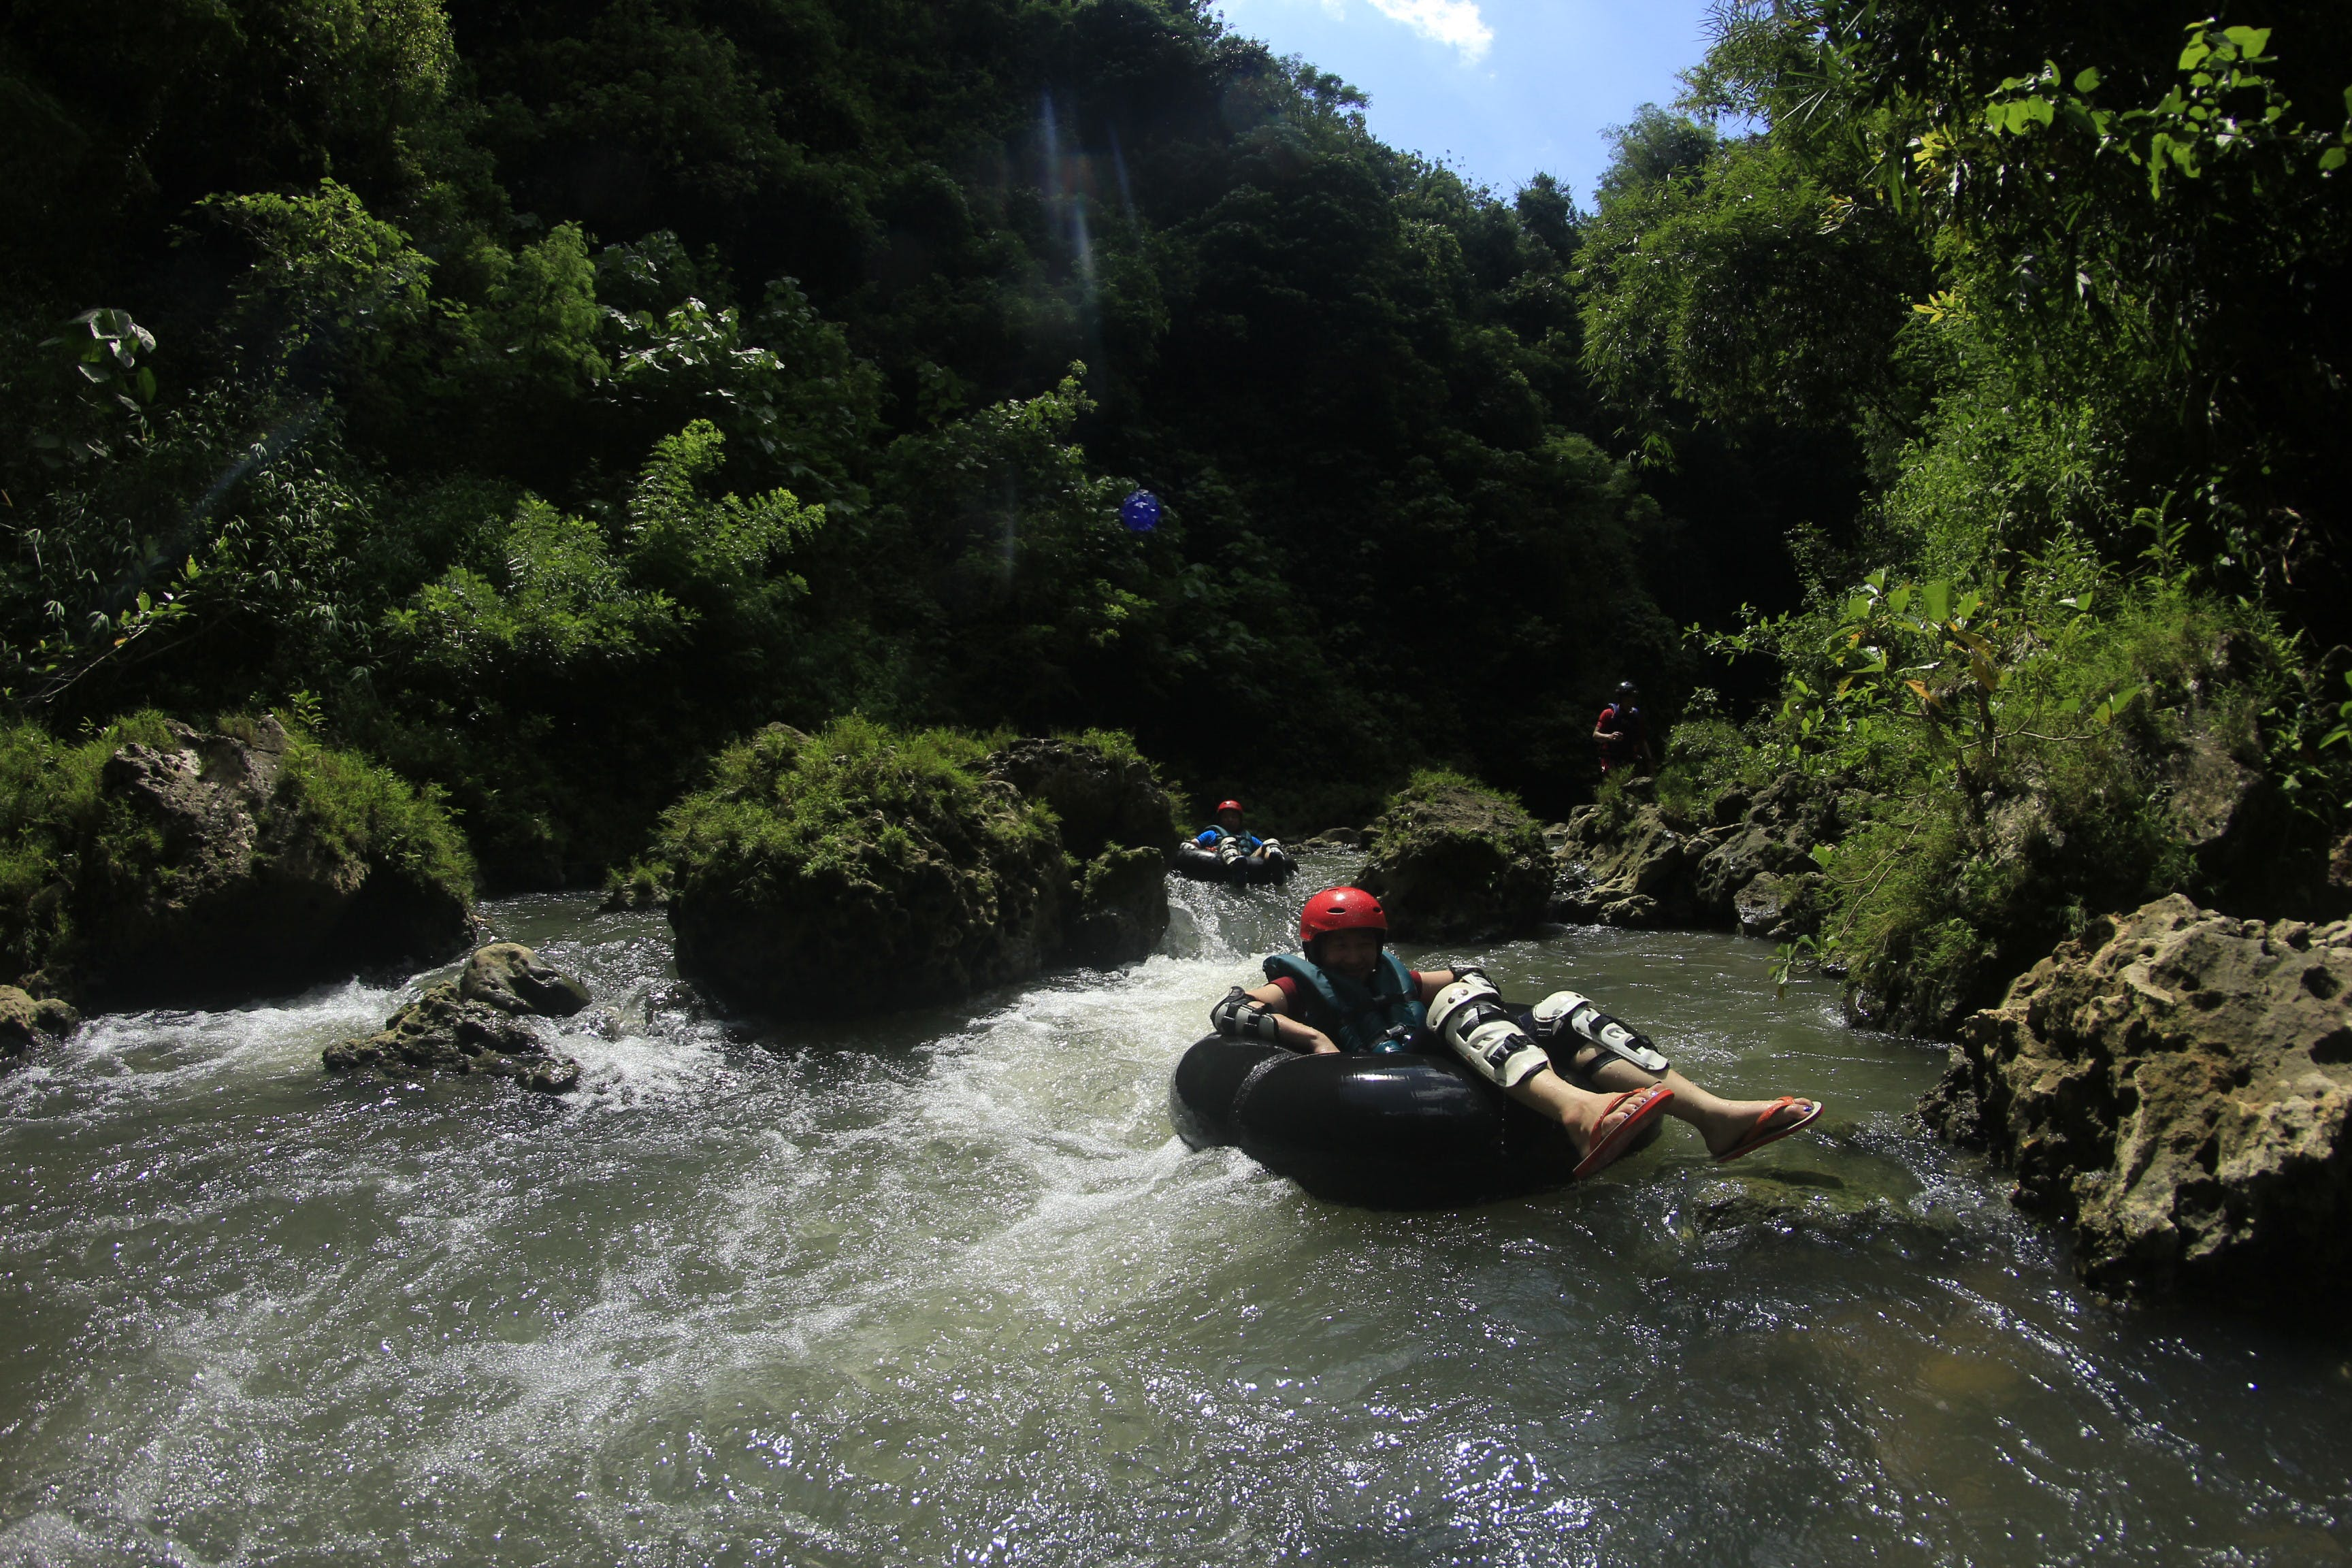 Person Riding Black Inflatable Ring on Body of Water Near Mountain